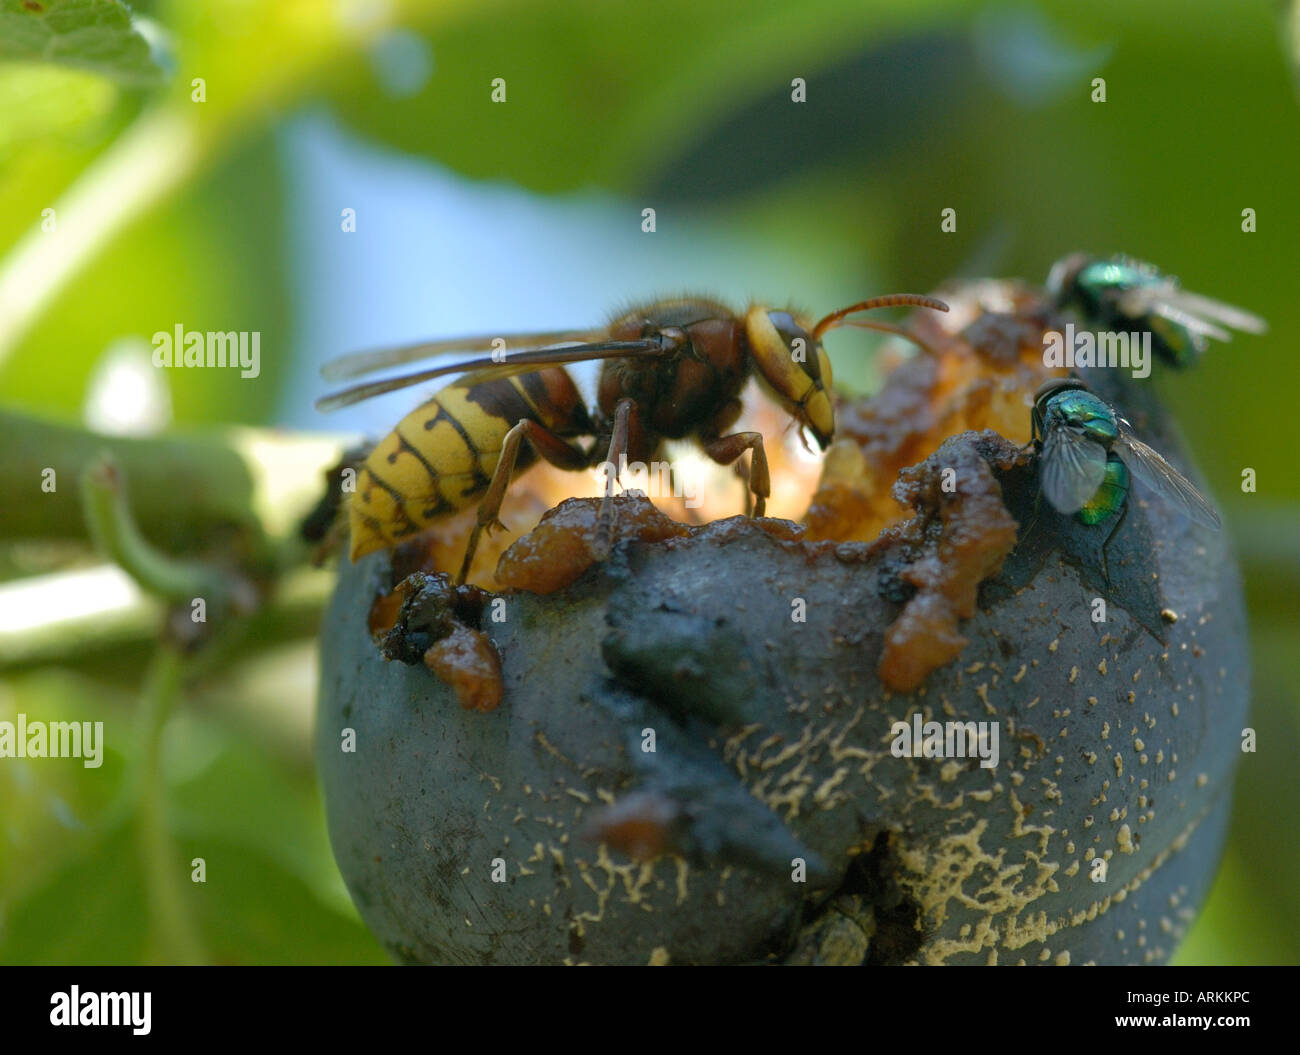 Hornet Vespa crabro eating a rotten mouldy plum Plum pulp can be seen in the hornet s massive jaws - Stock Image